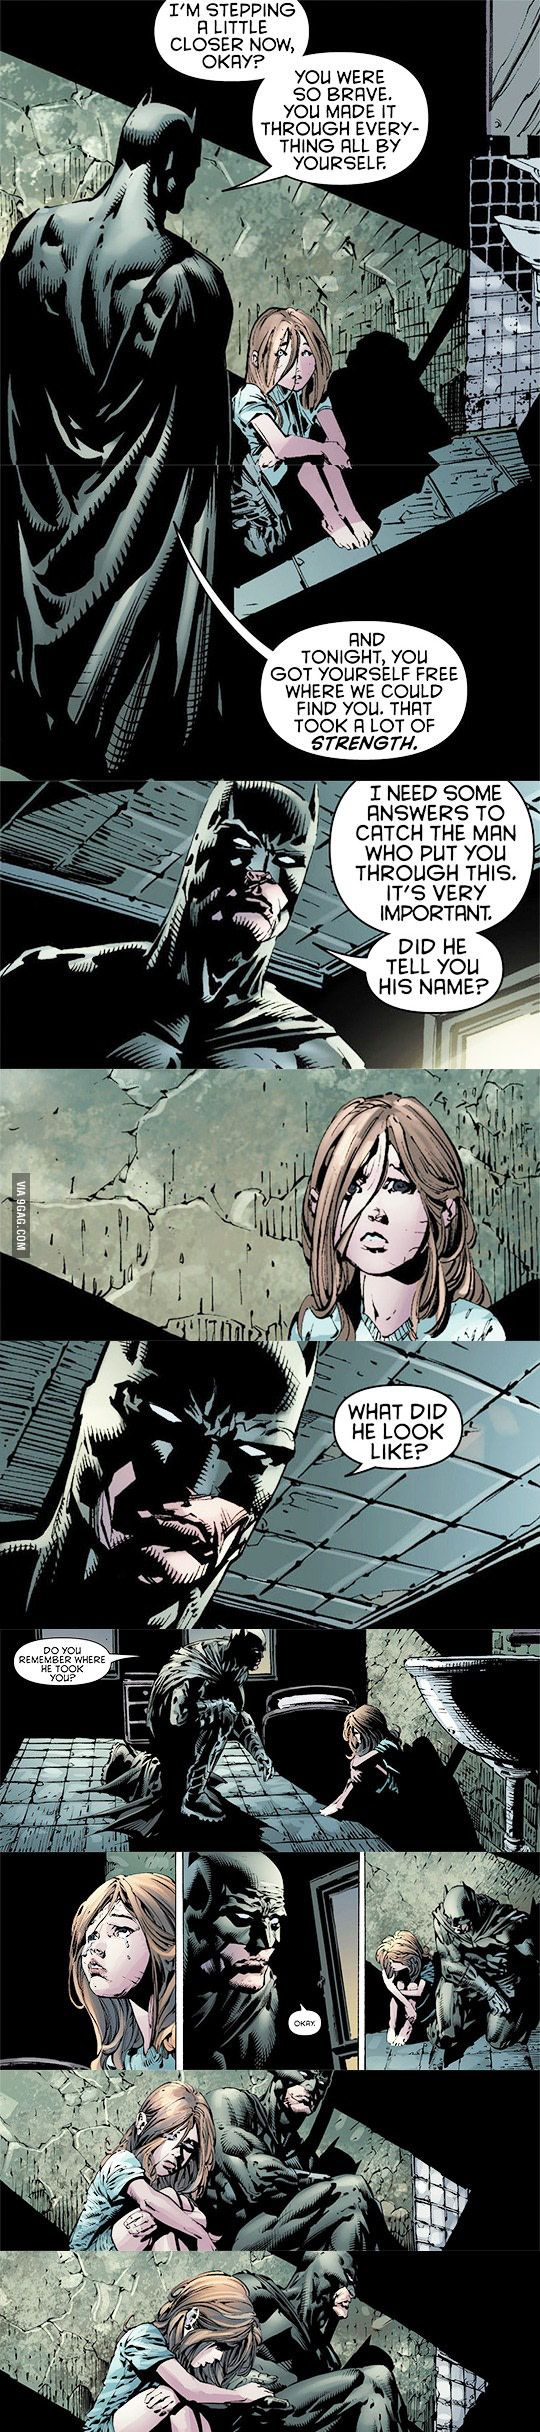 The Hand... it's awesome to see, people always forget that Bruce Wayne understands what it's like to lose that innocence